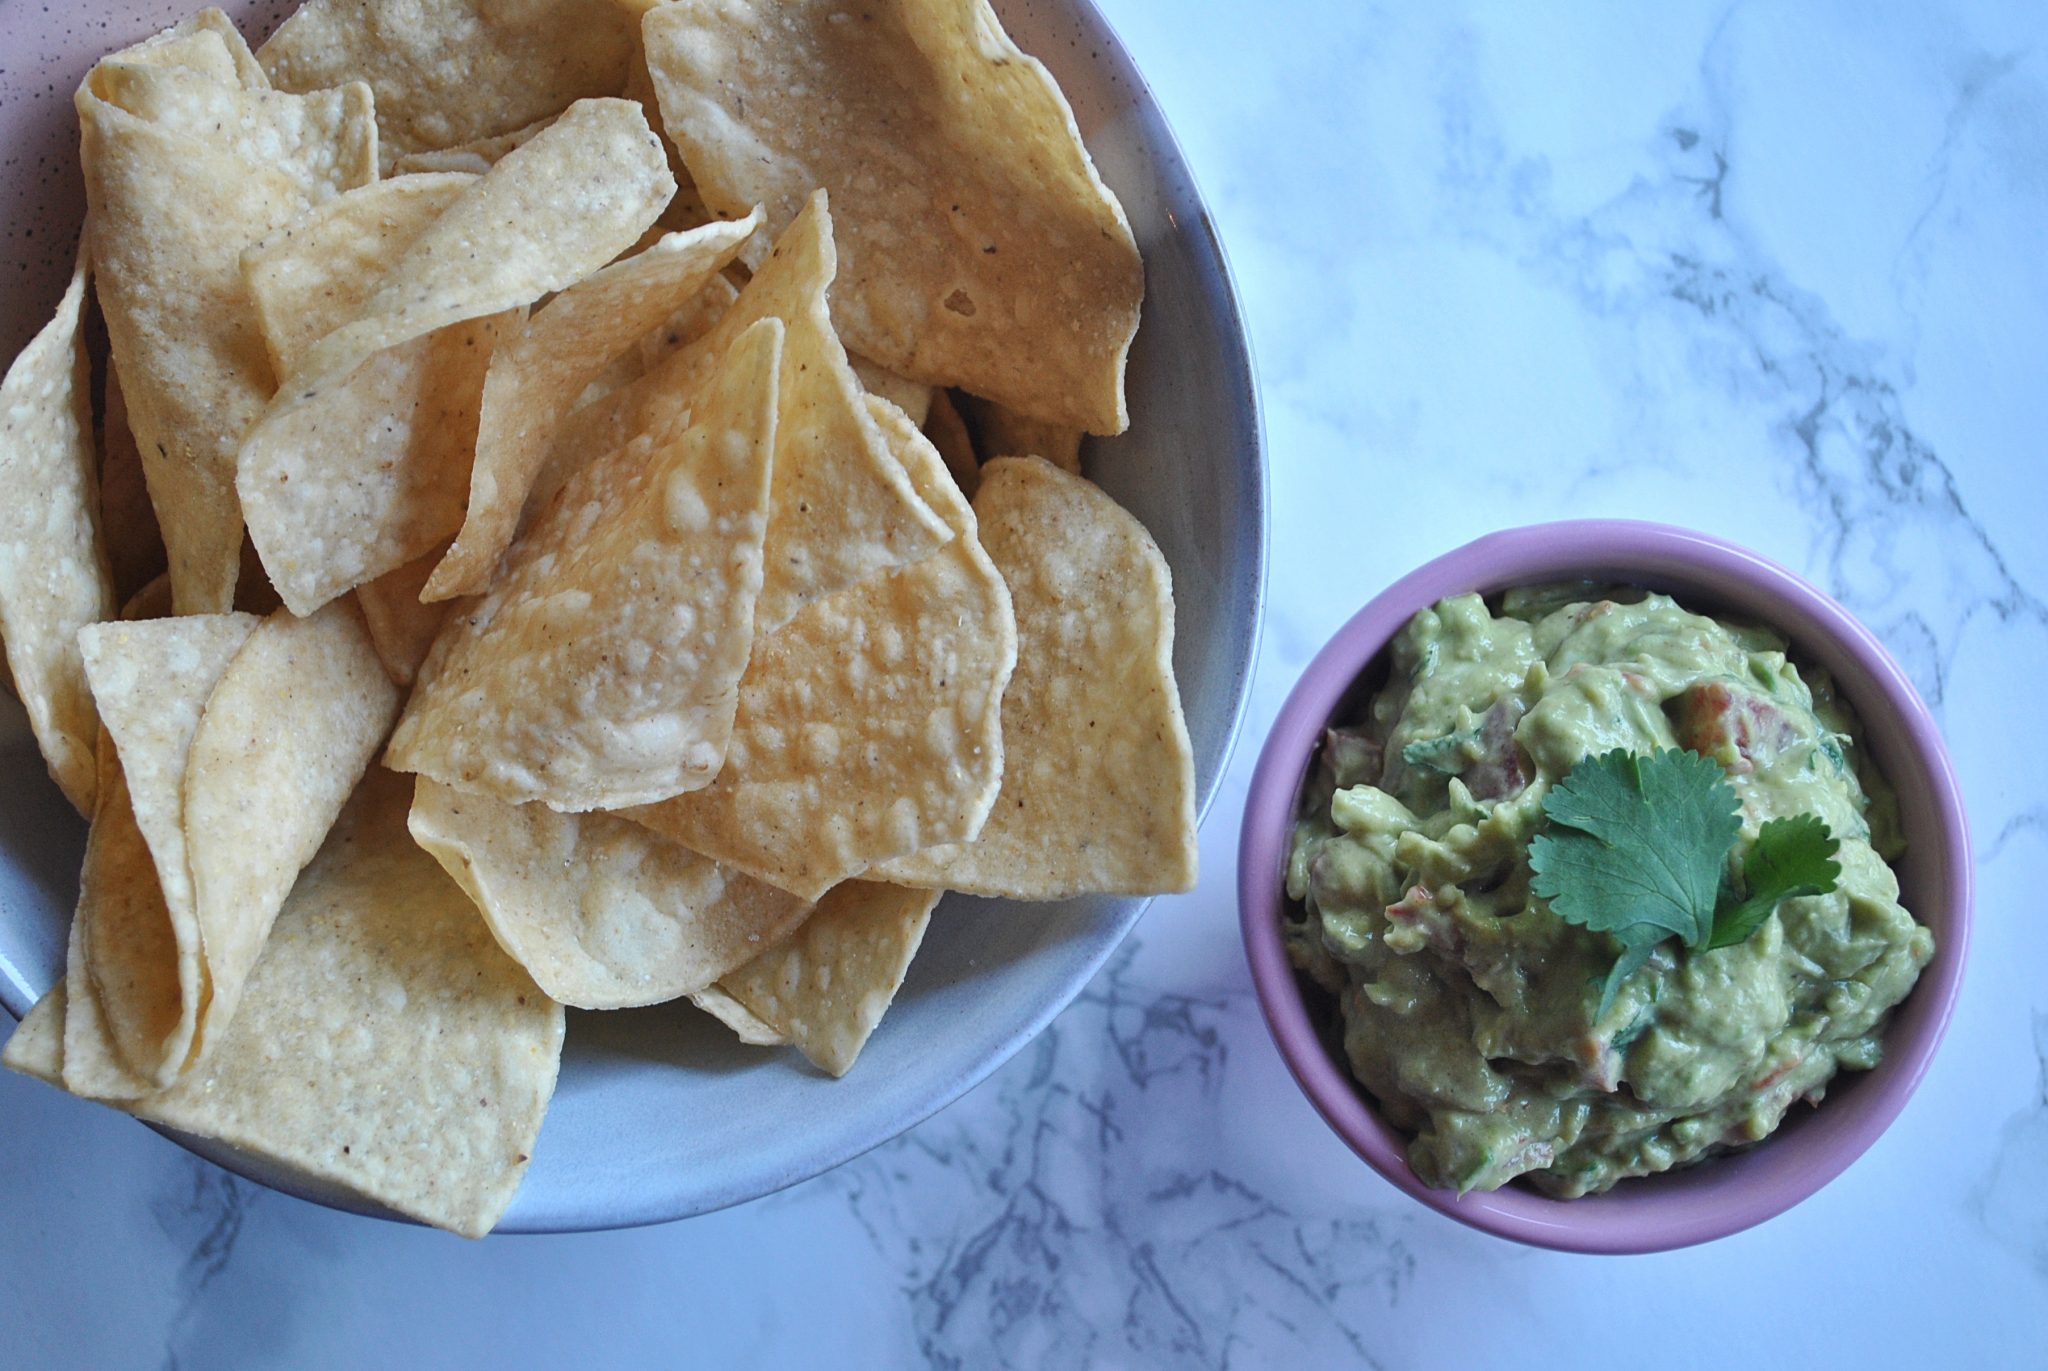 THB-guacamole-and-chips.jpg